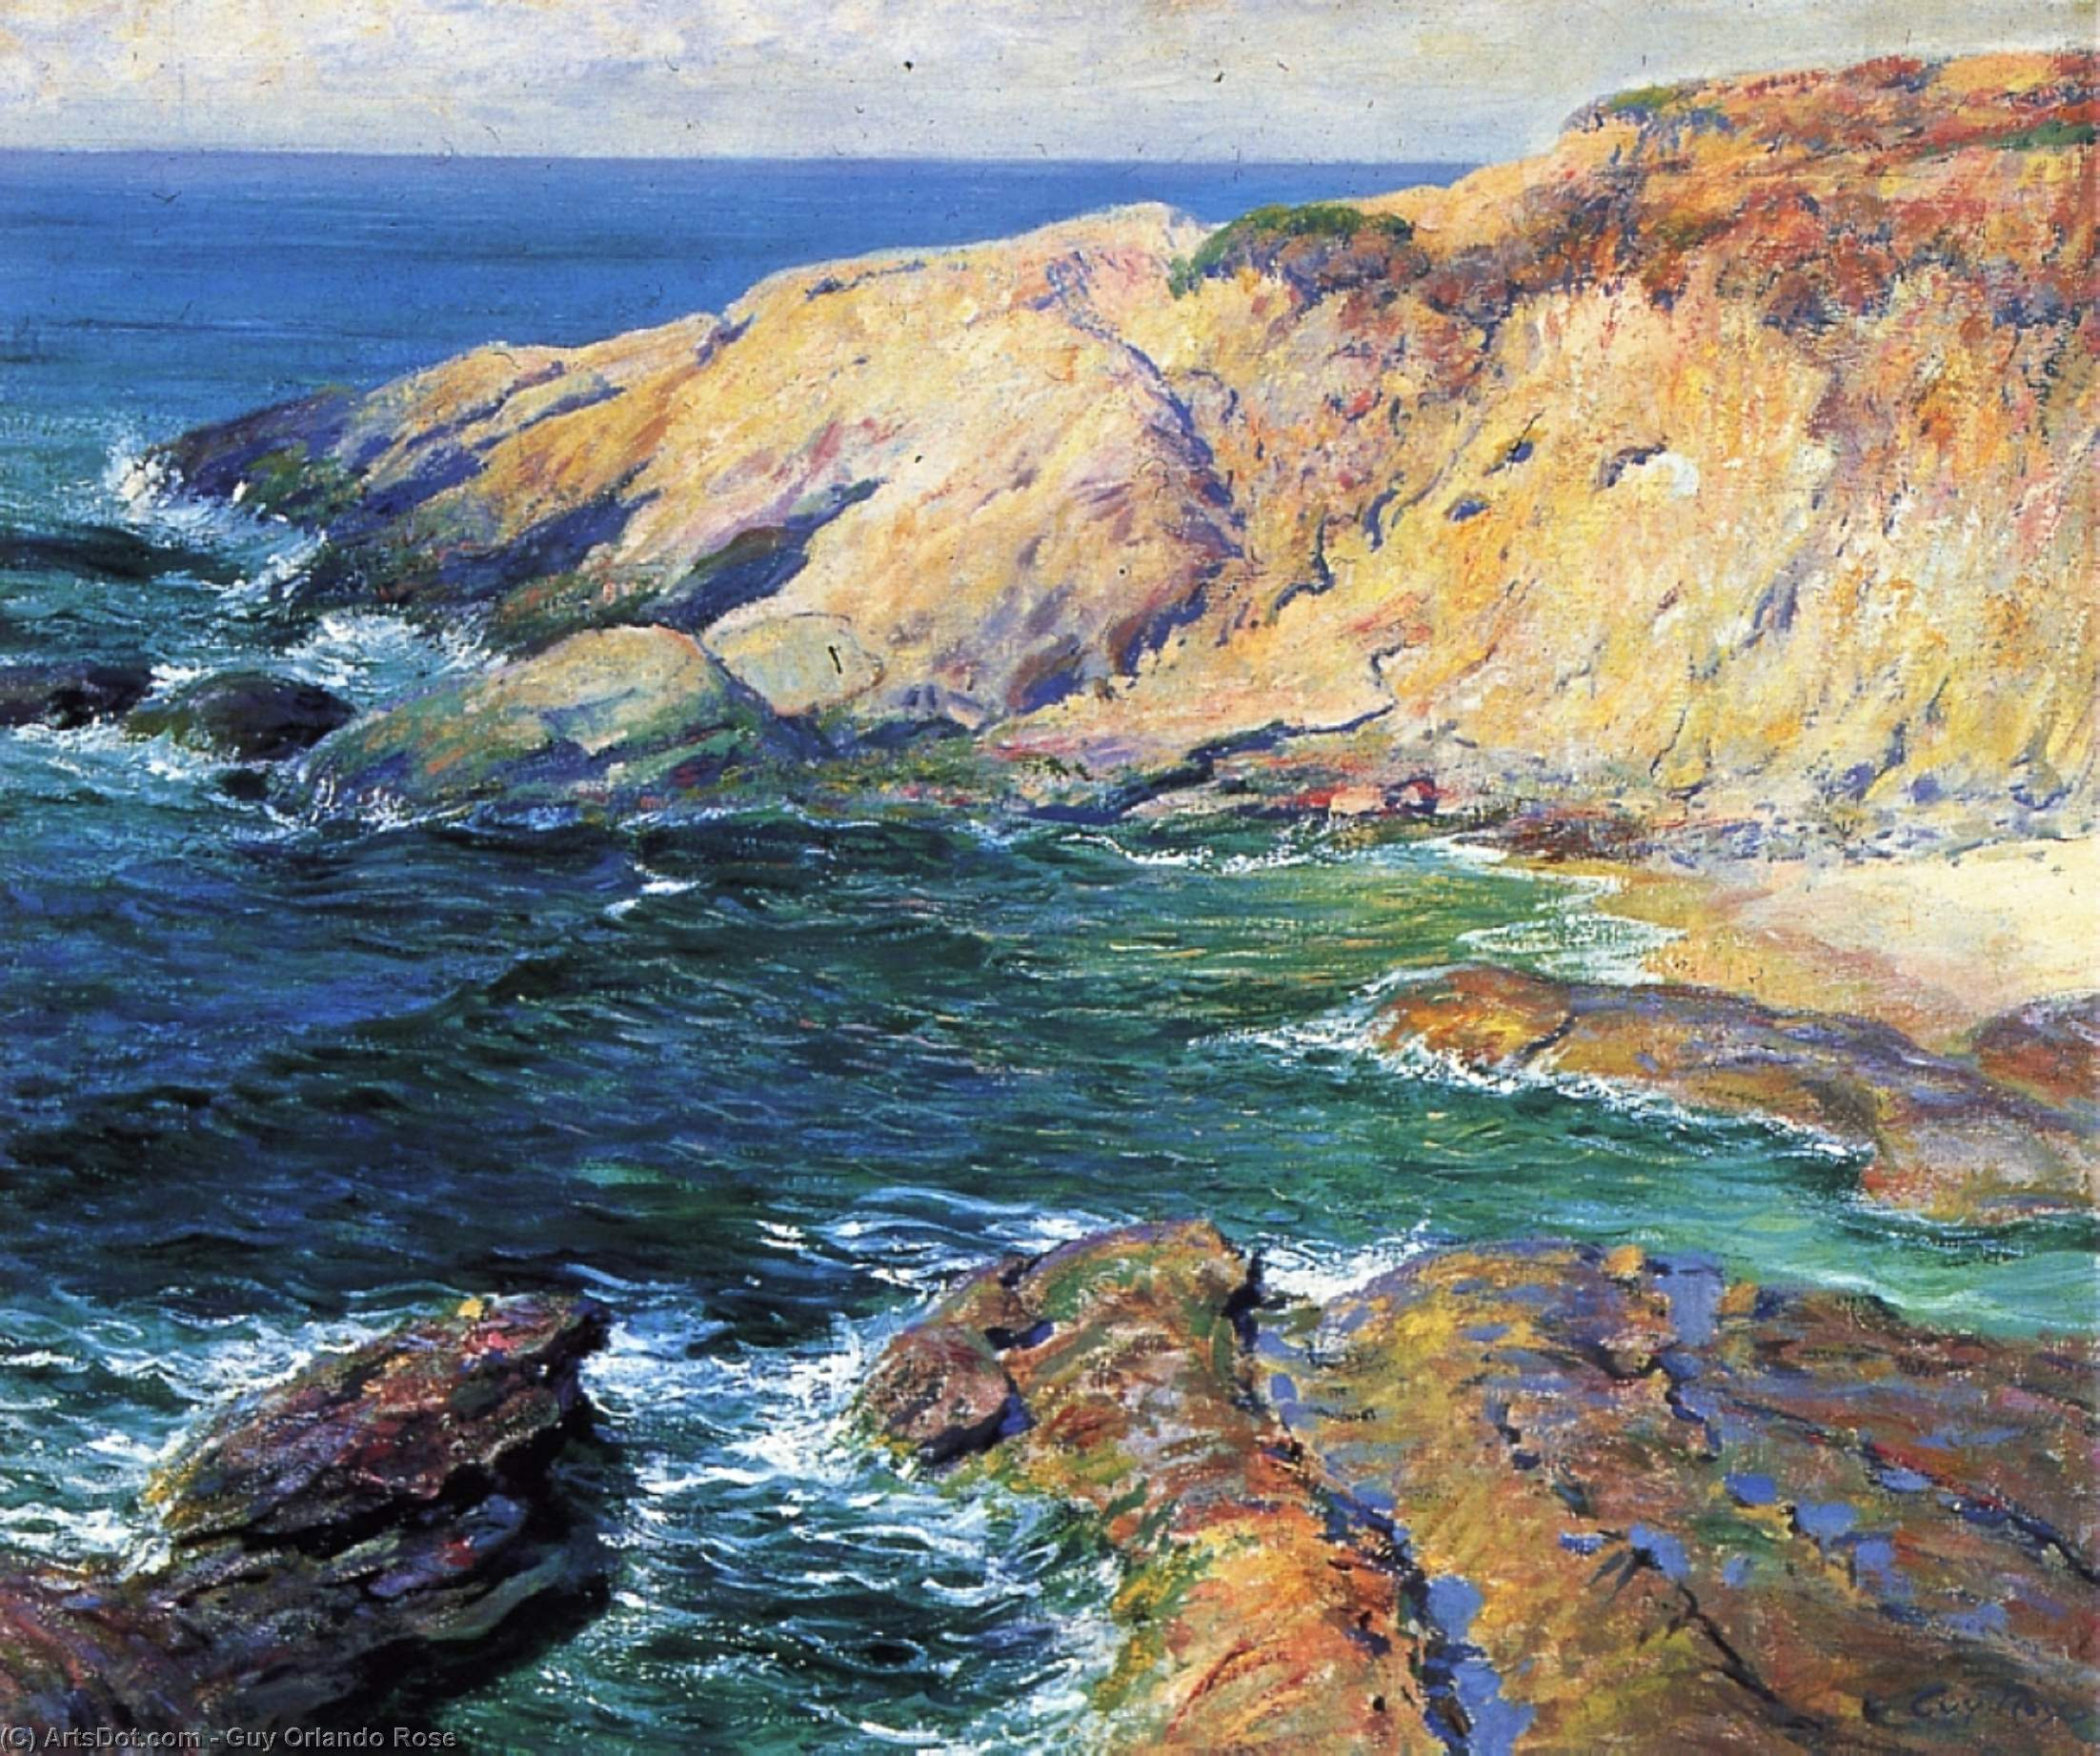 Order Art Reproduction : Incoming Tide, 1917 by Guy Orlando Rose (1867-1925, United States) | ArtsDot.com